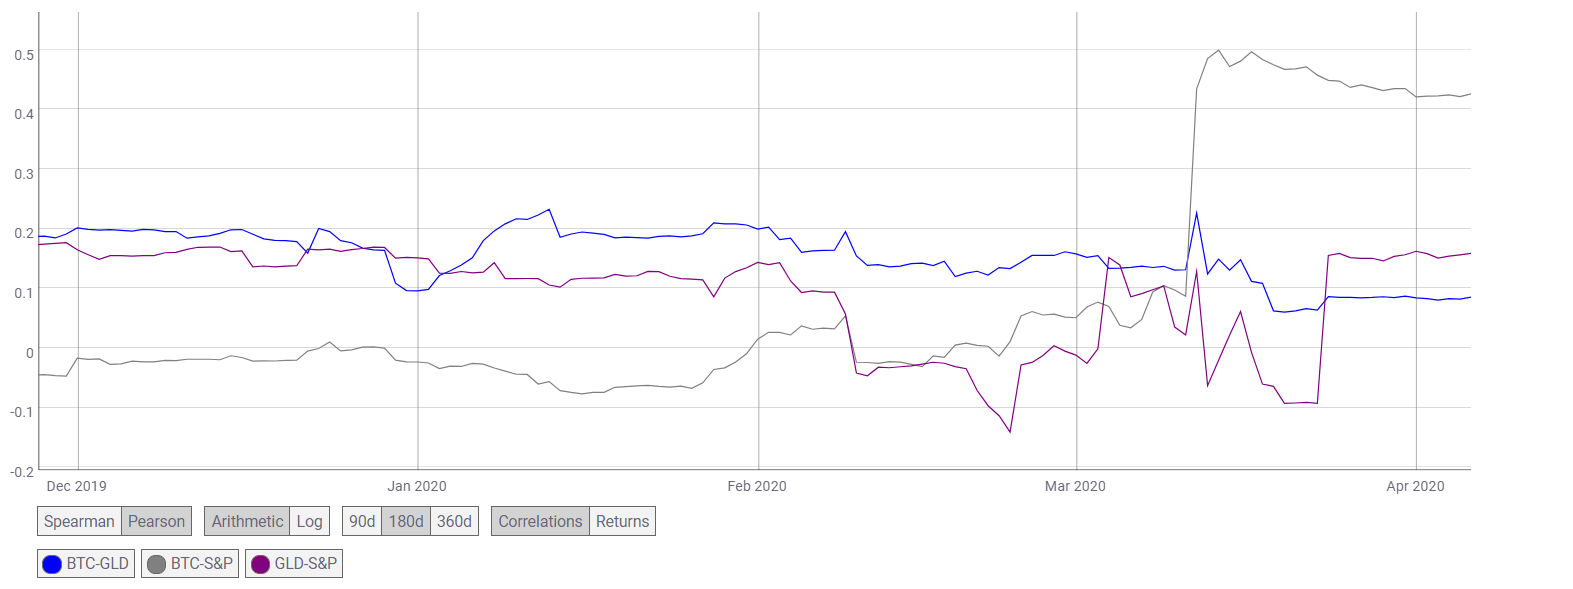 bitcoin price today bitcoin spikes by 2x in 26 days correlation with gold sp 500 strengthens unprecedentedly for 30 days